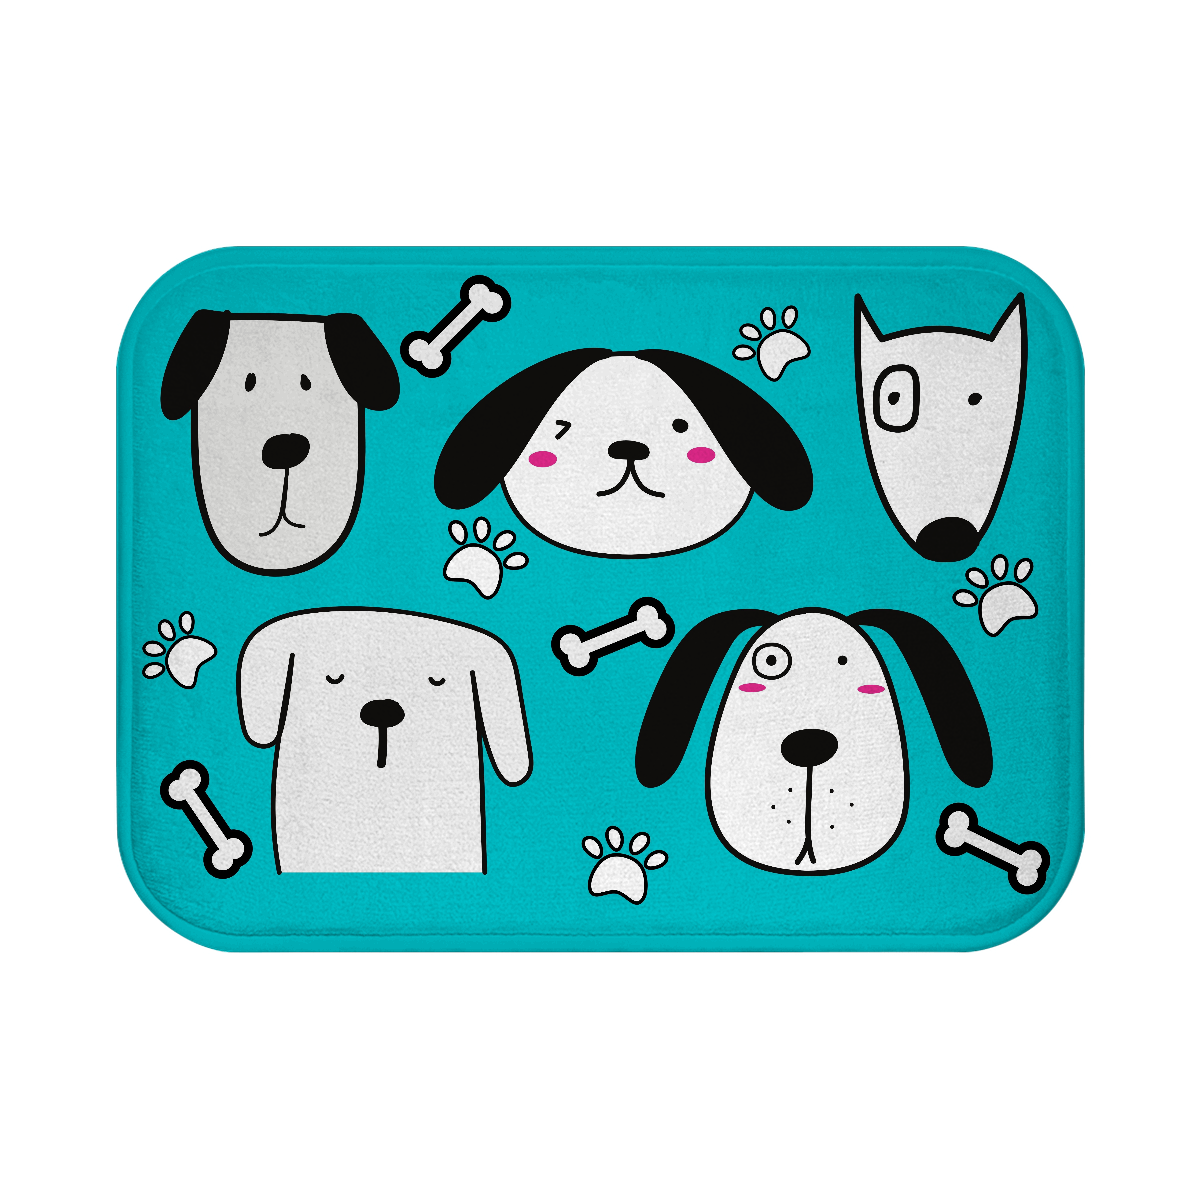 Cute Puppies Bath Mat - Turquoise - RuffRuffShop.com